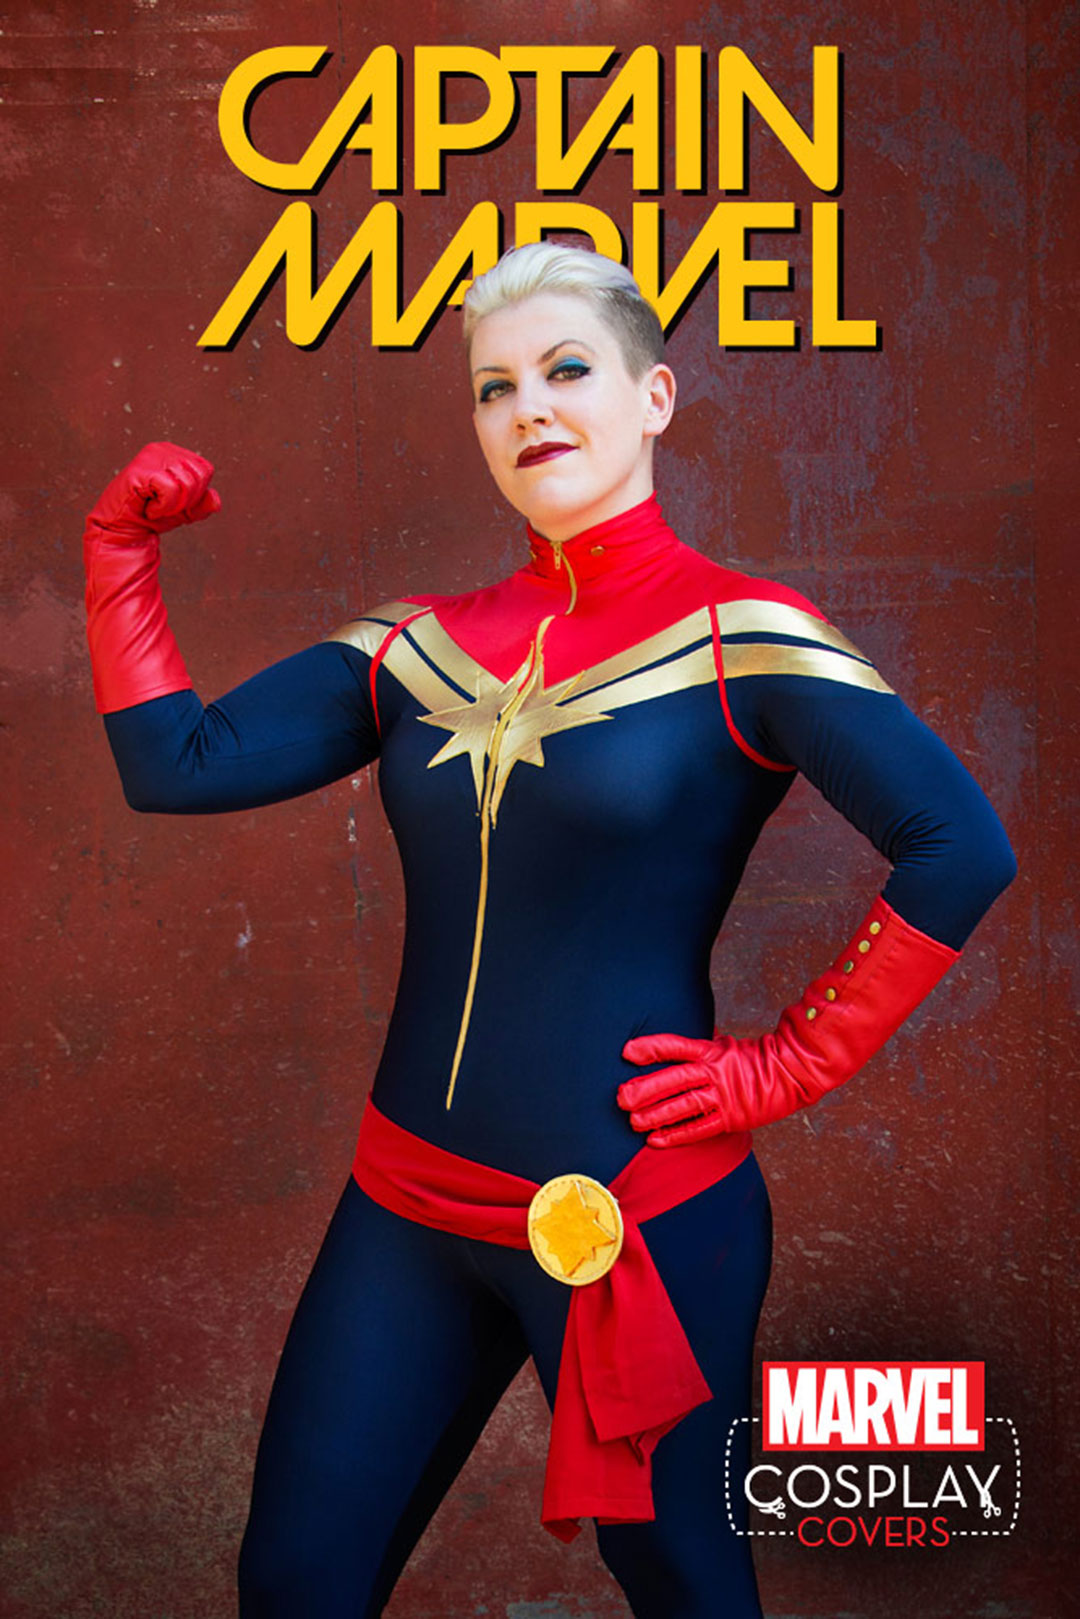 Couverture-Marvel-cosplay (12)